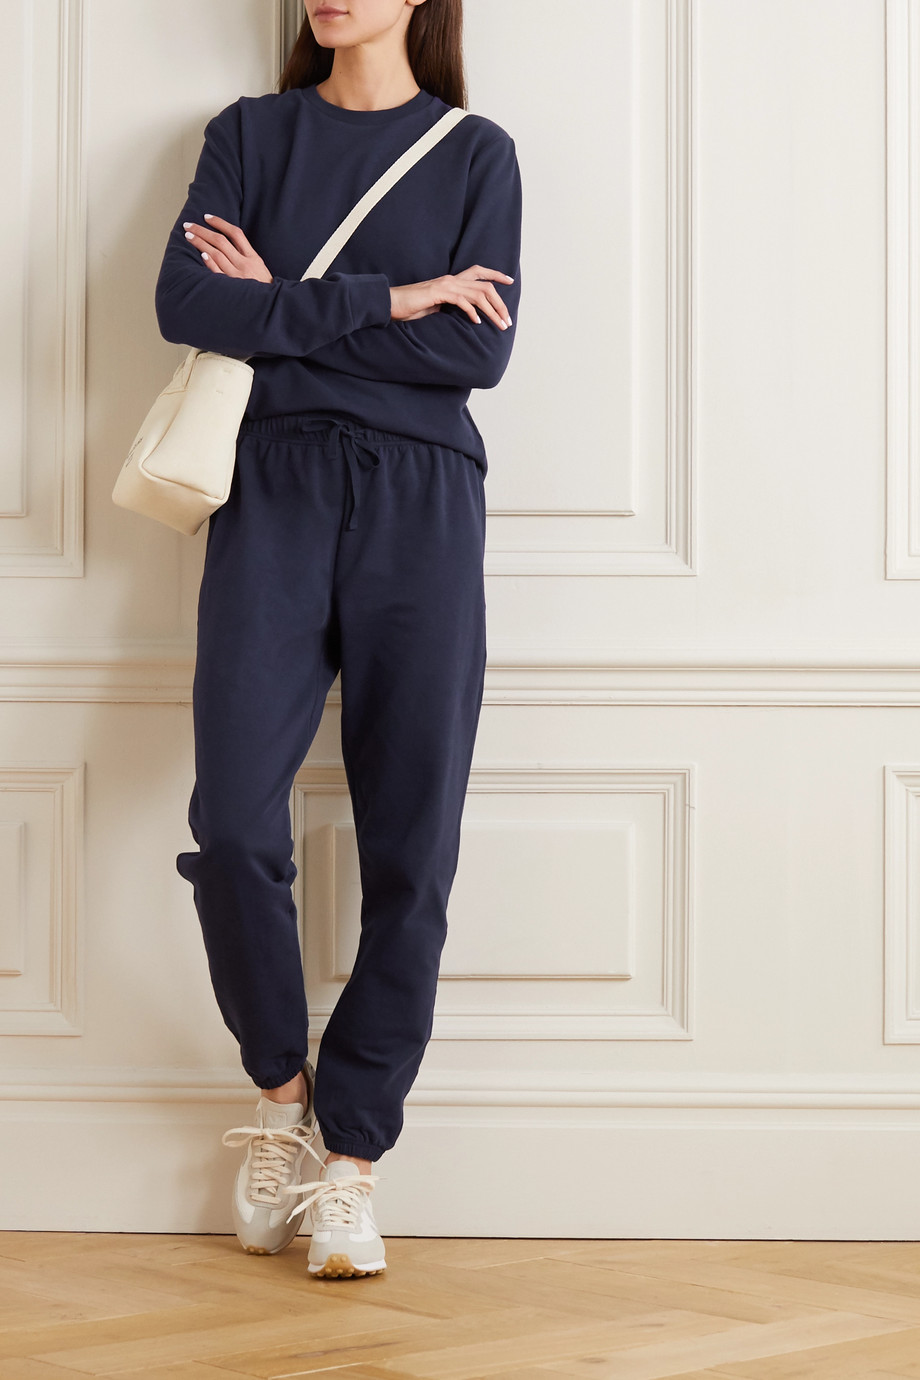 NINETY PERCENT + NET SUSTAIN organic cotton-jersey sweatshirt and track pants set